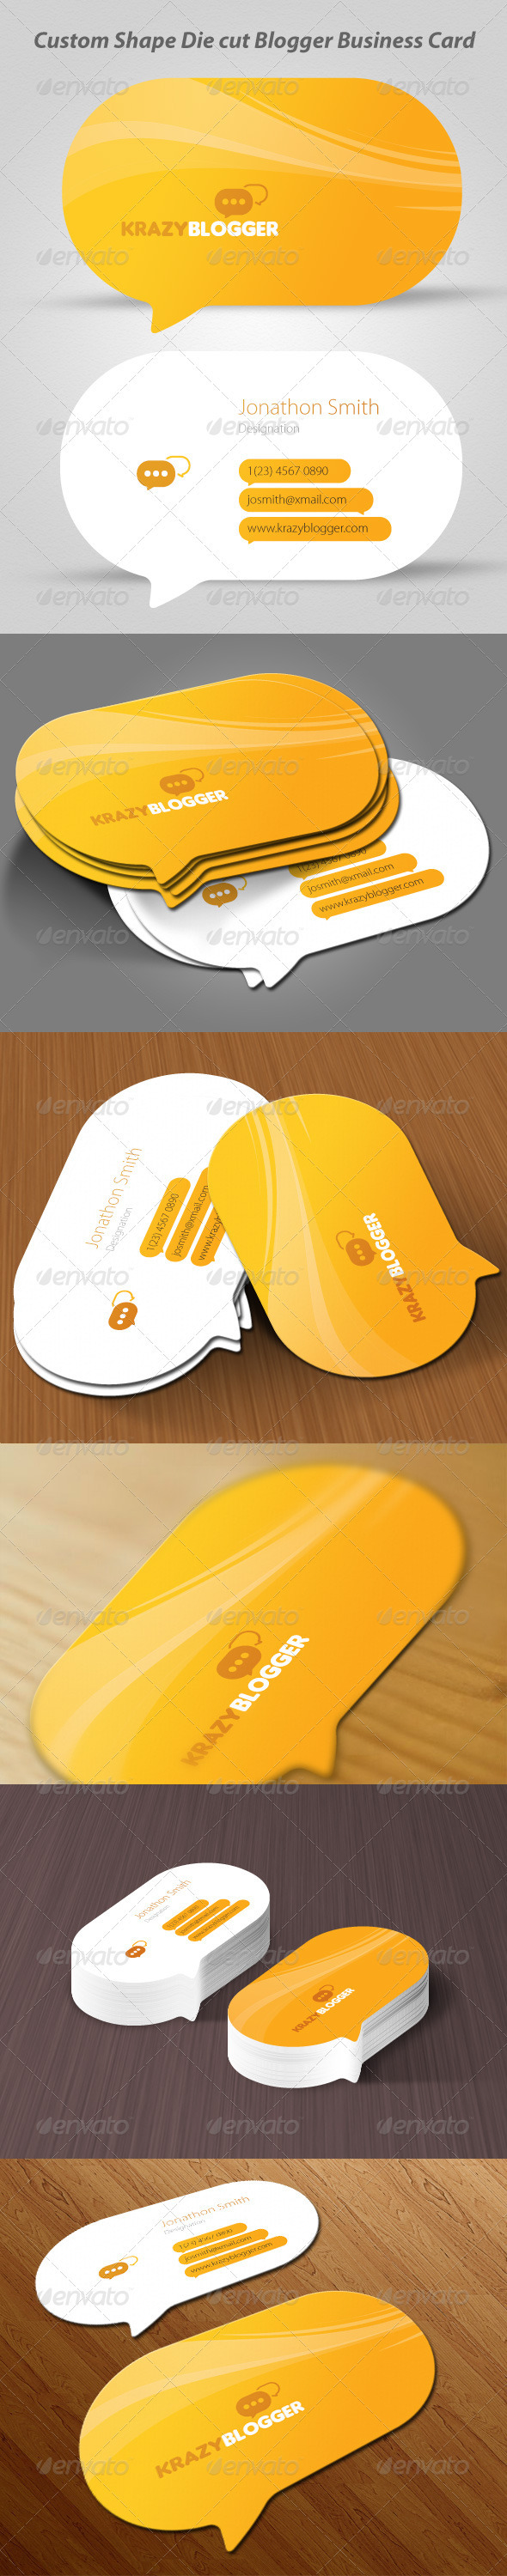 GraphicRiver Blogger Business Card 3843381